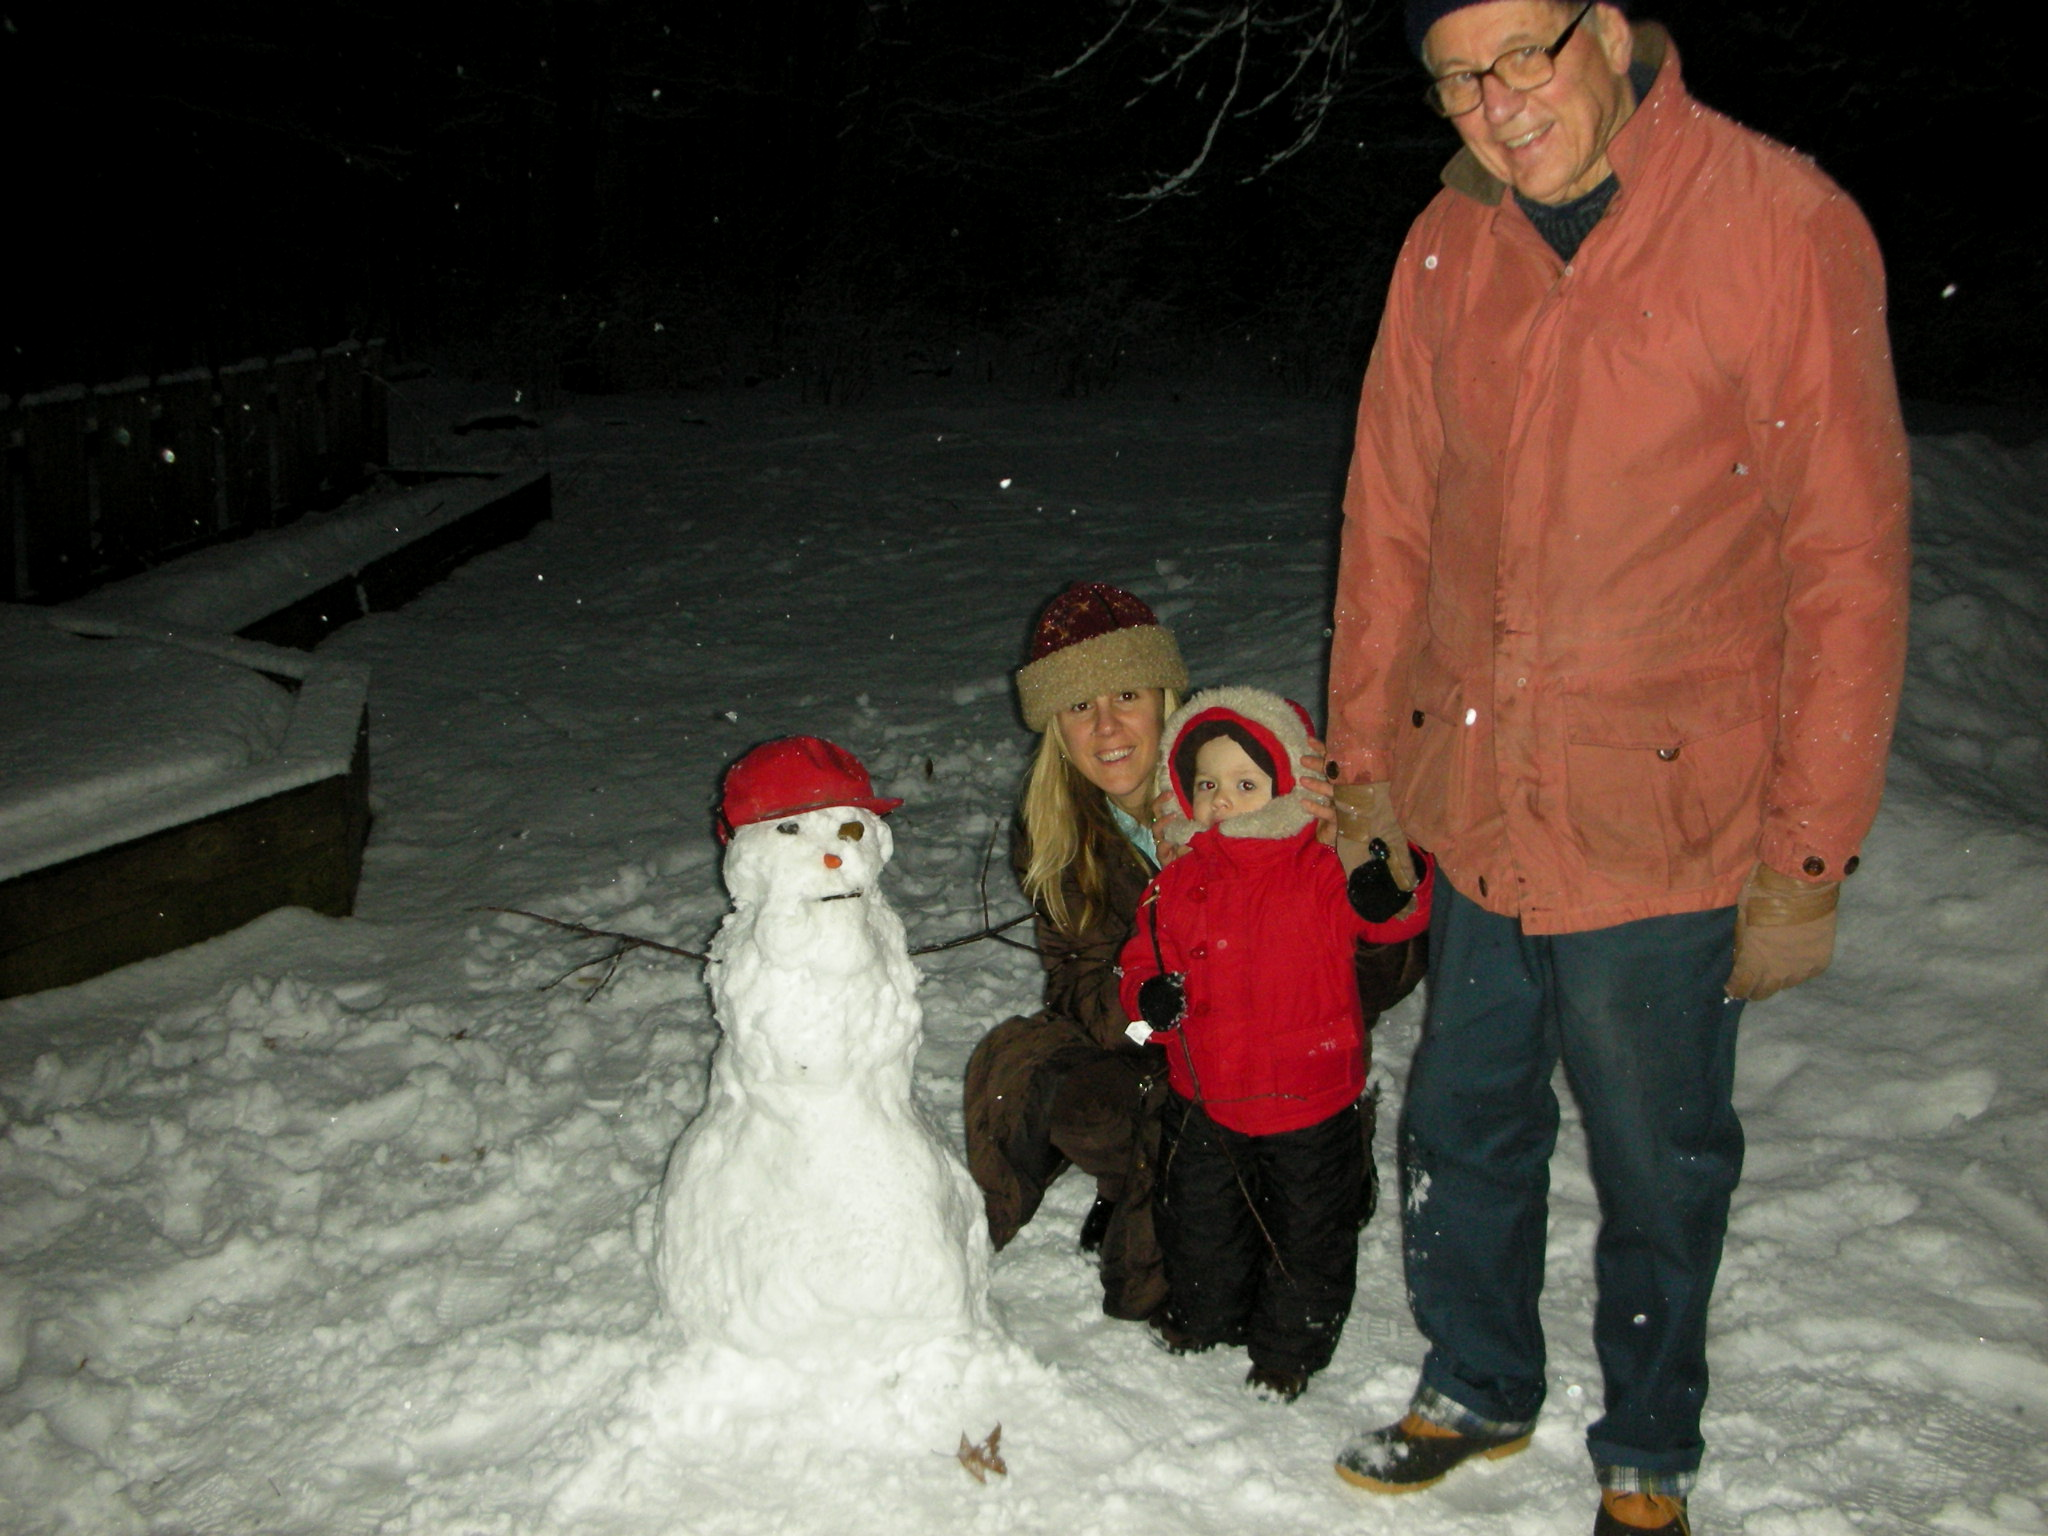 Dylan Building a Snowman with Victoria and Dennis